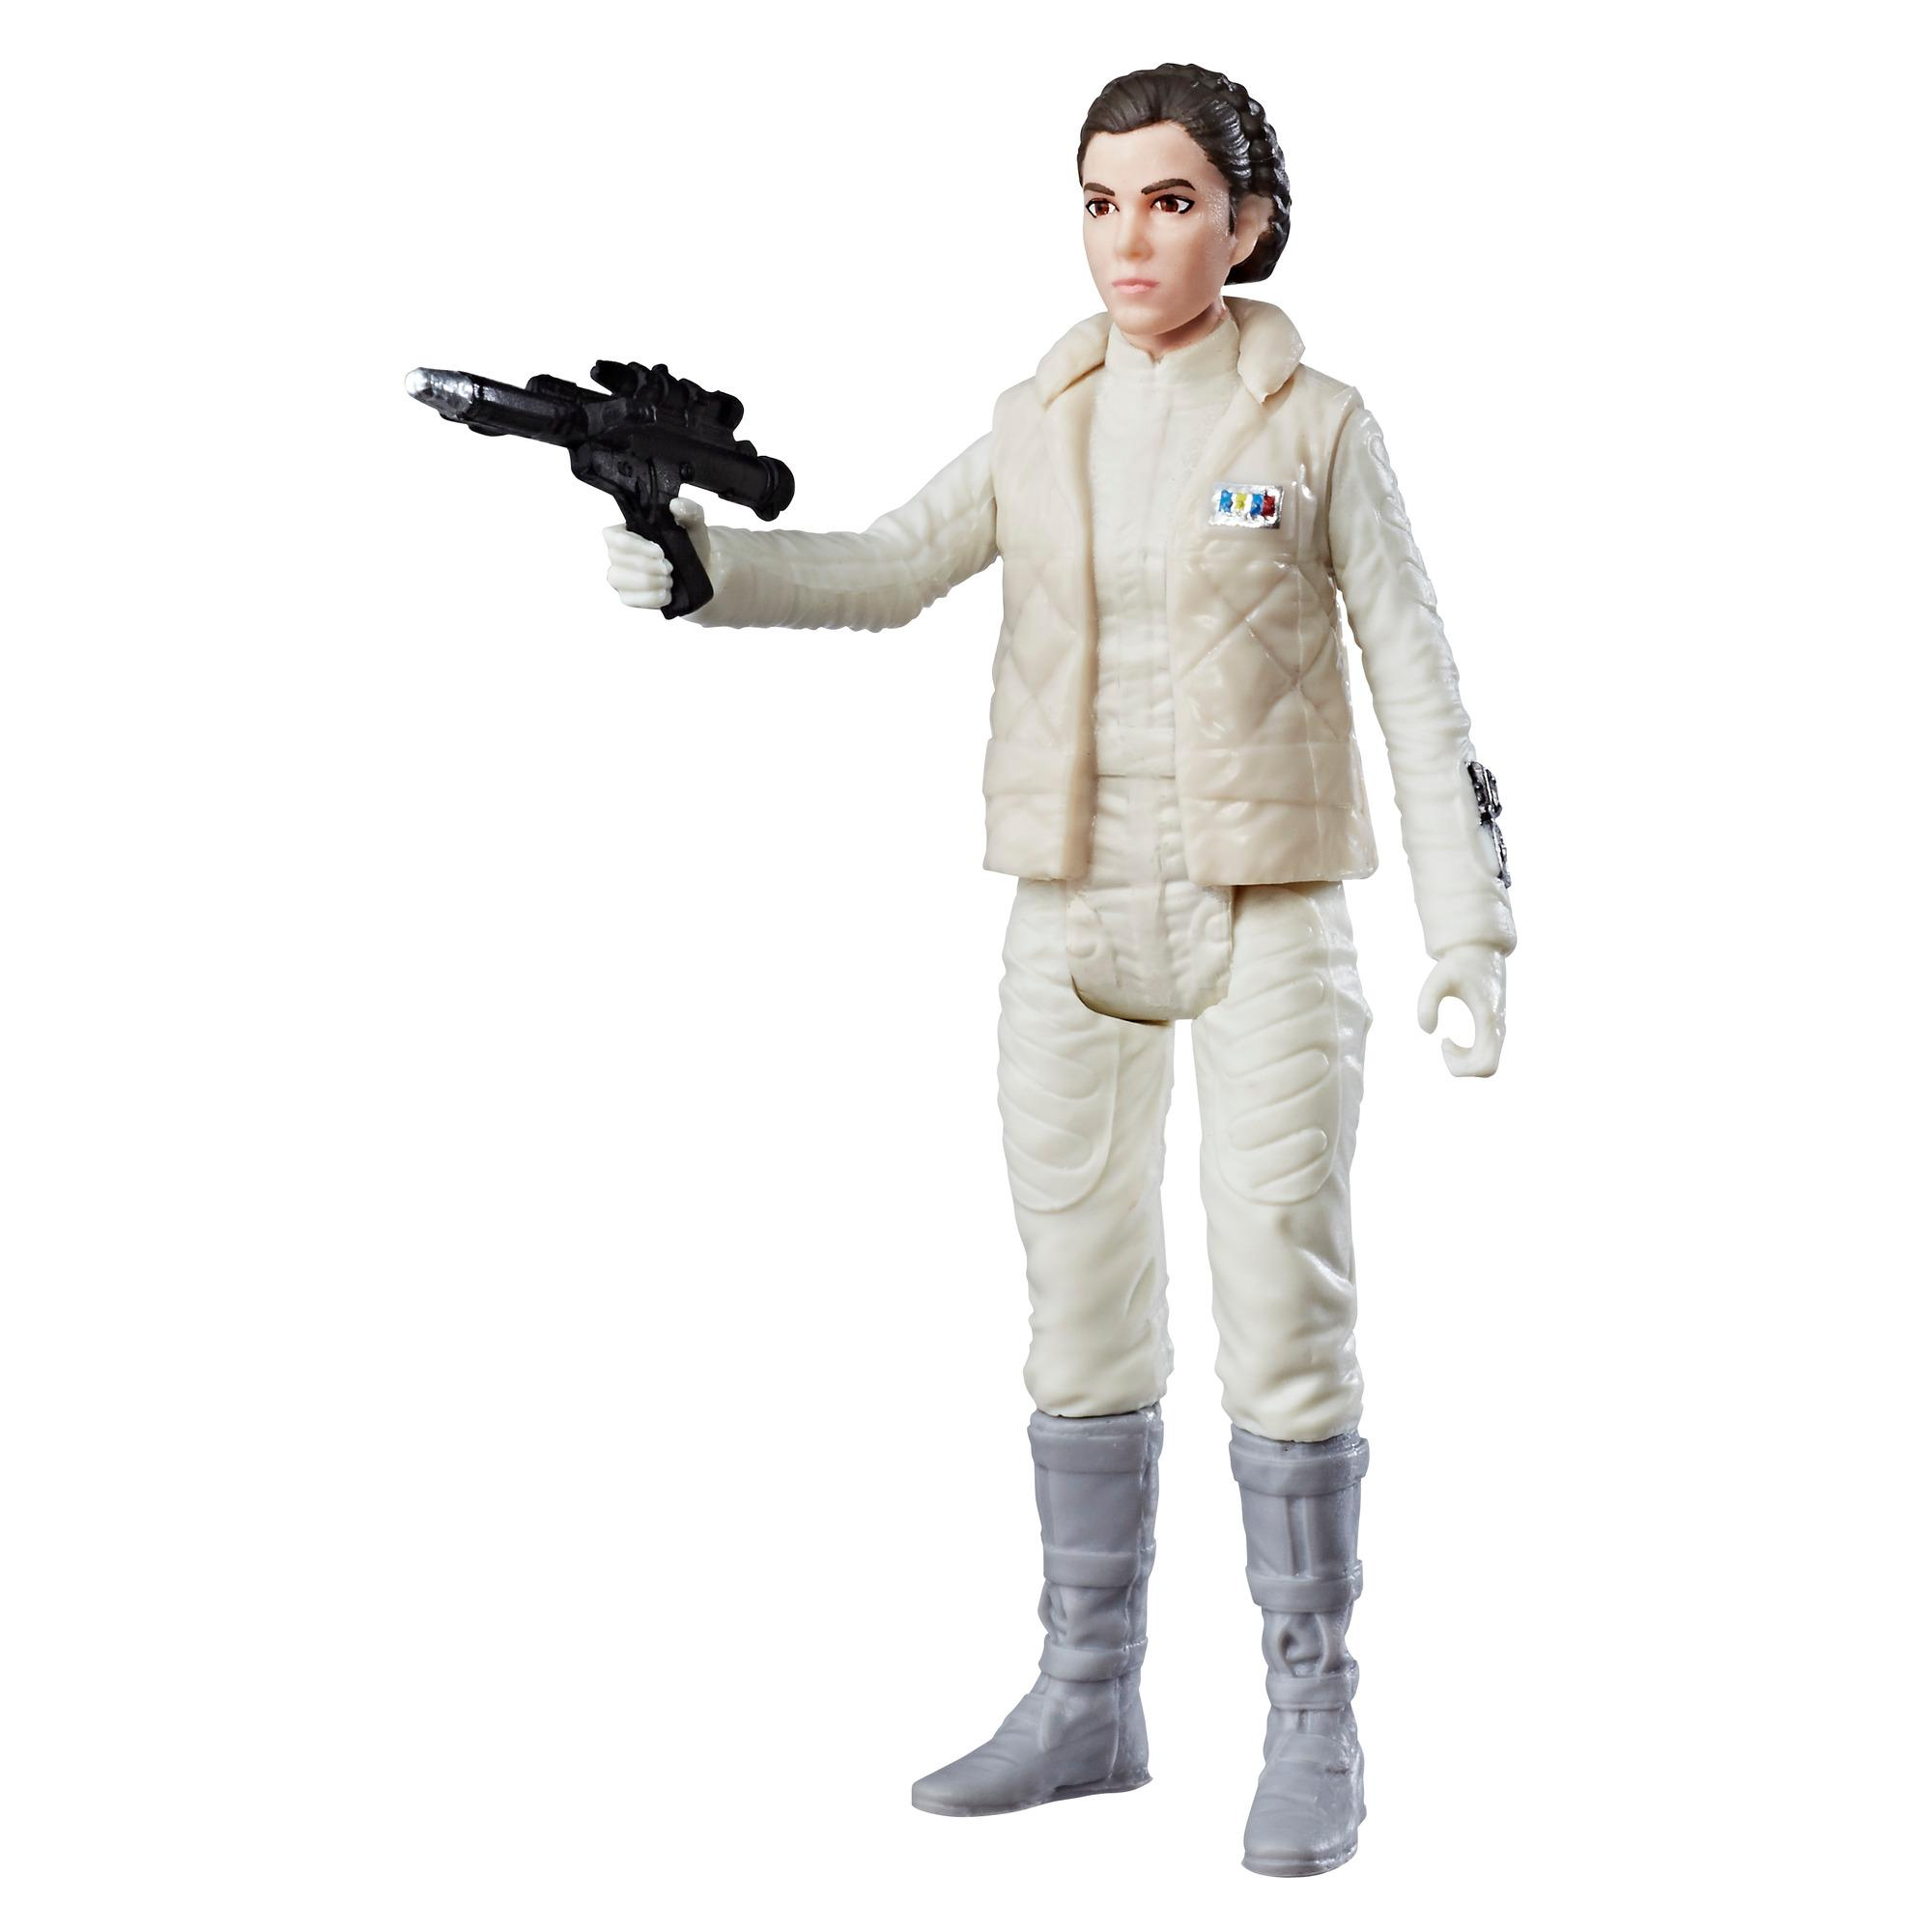 Star Wars Force Link 2.0 - Figurine Princesse Leia Organa